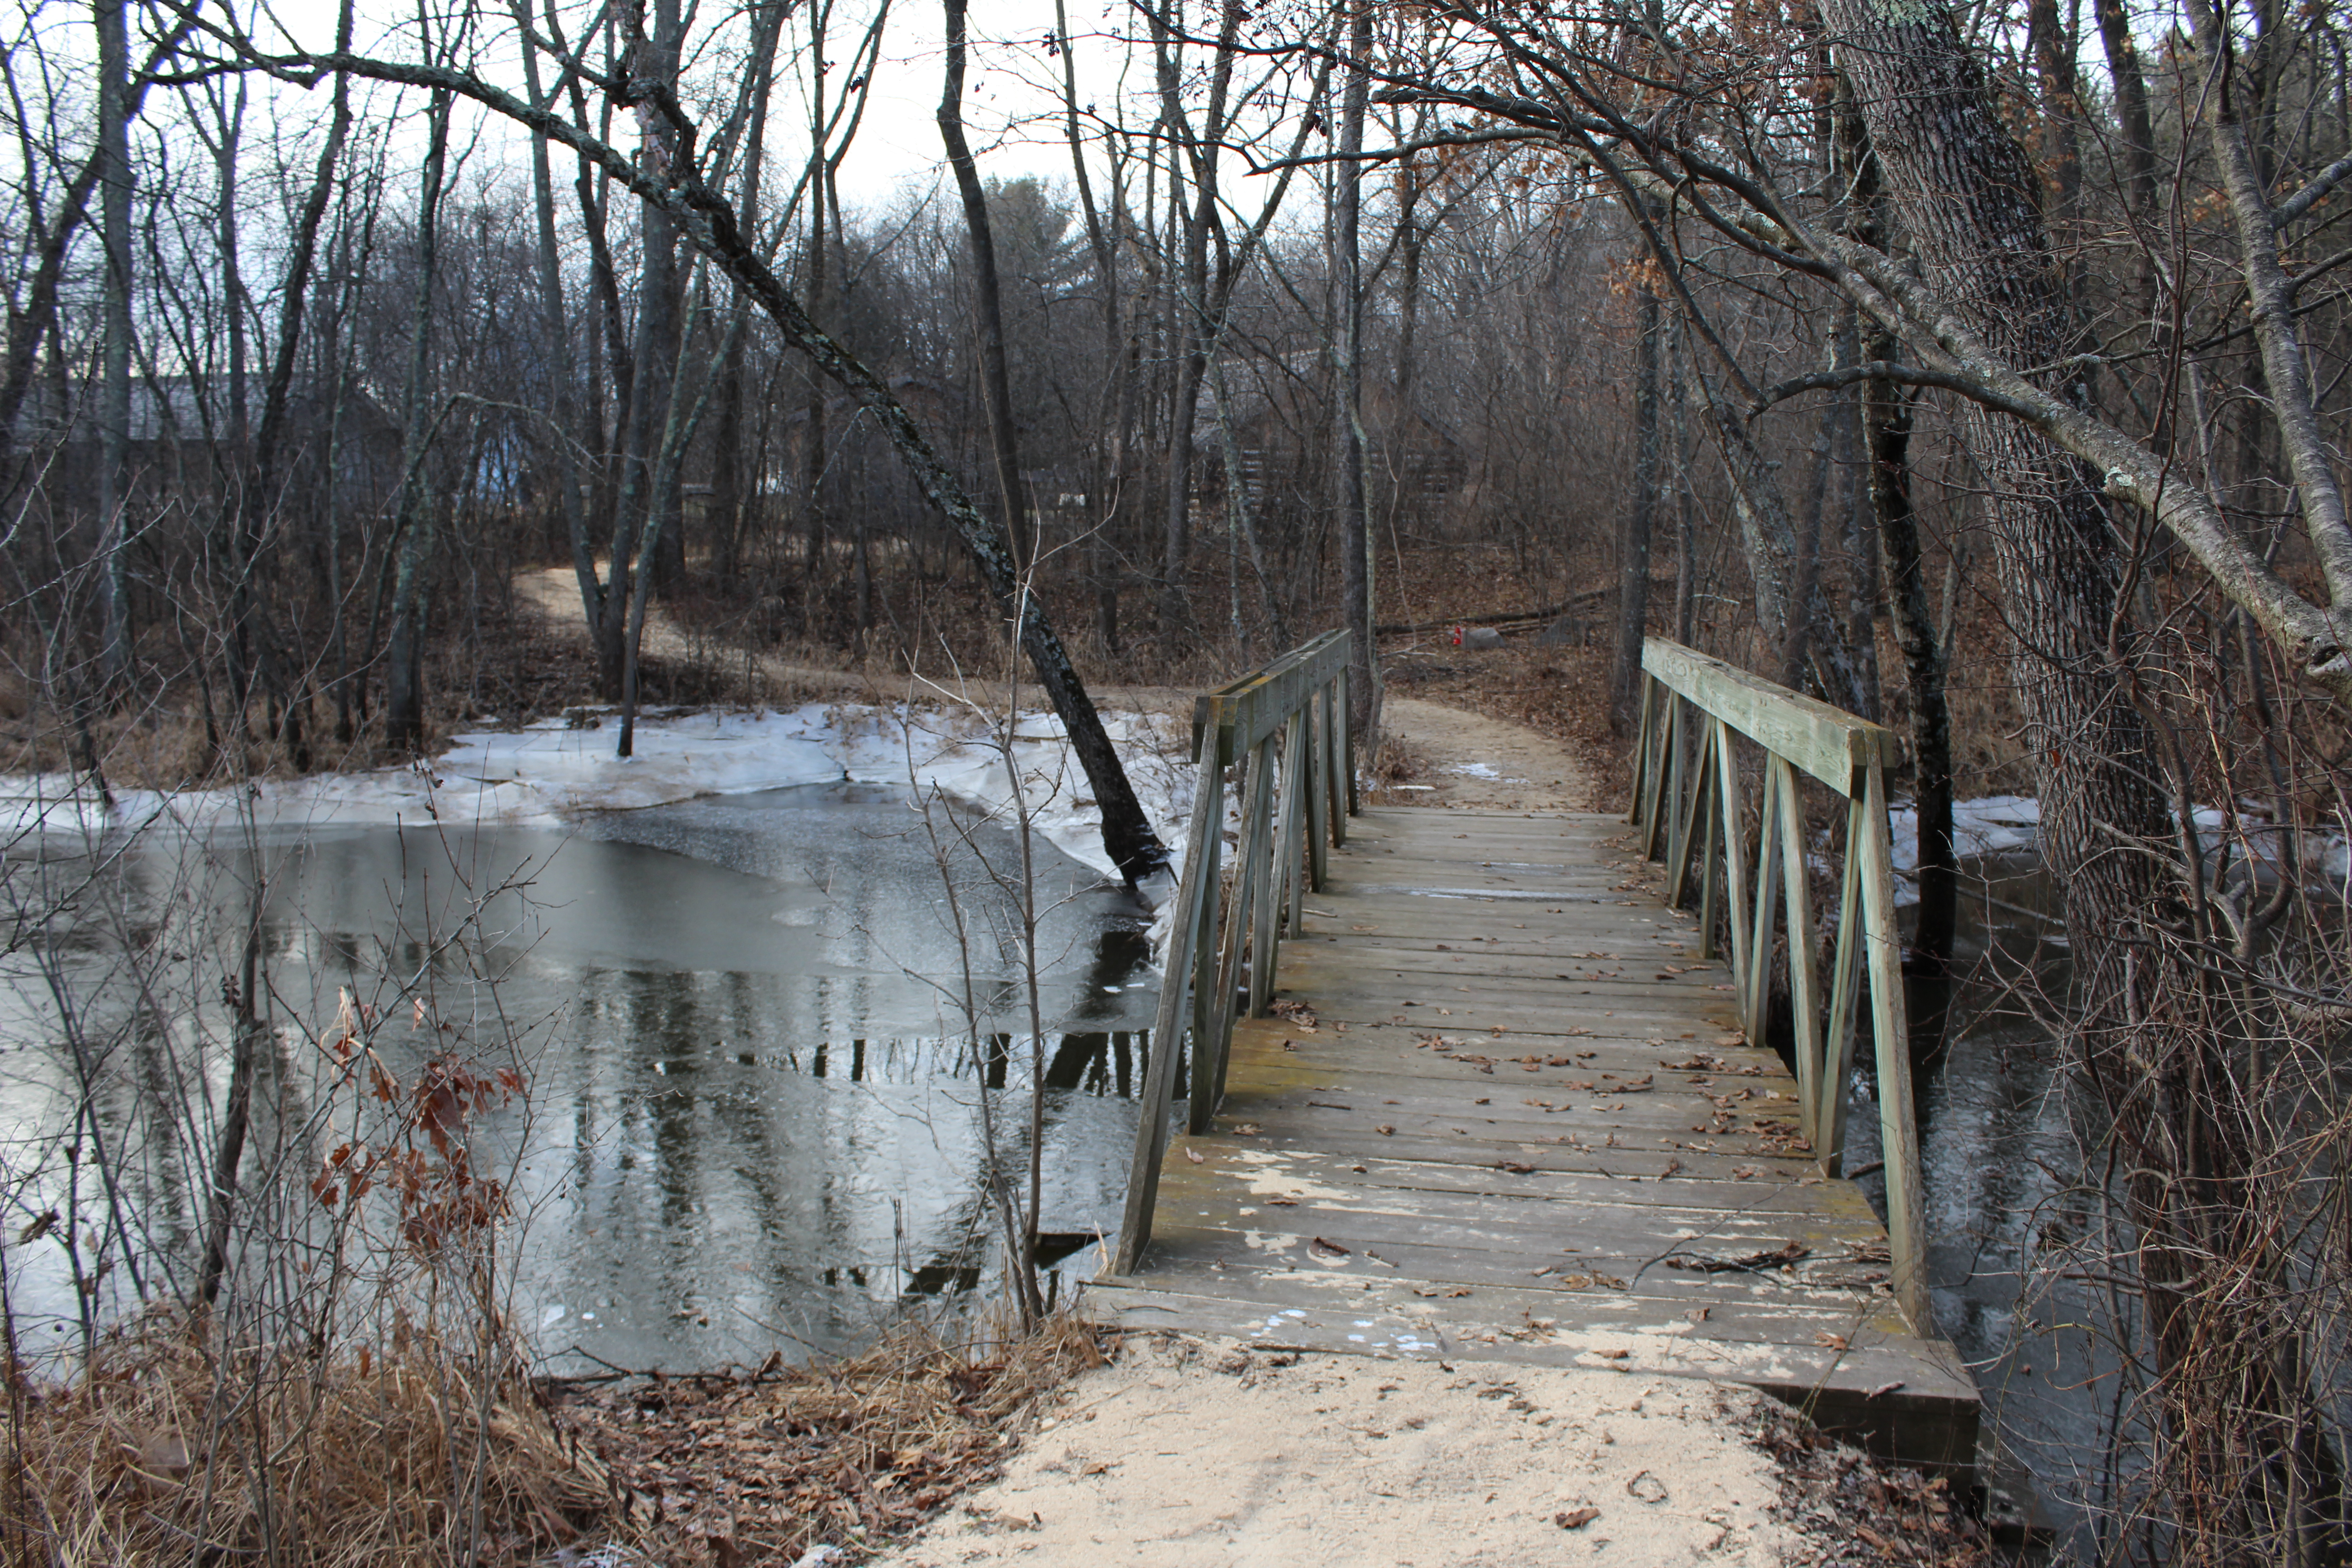 A wooden bridge leads the way to the Wakely house site at the Historic Point Basse. (City Times Photo)